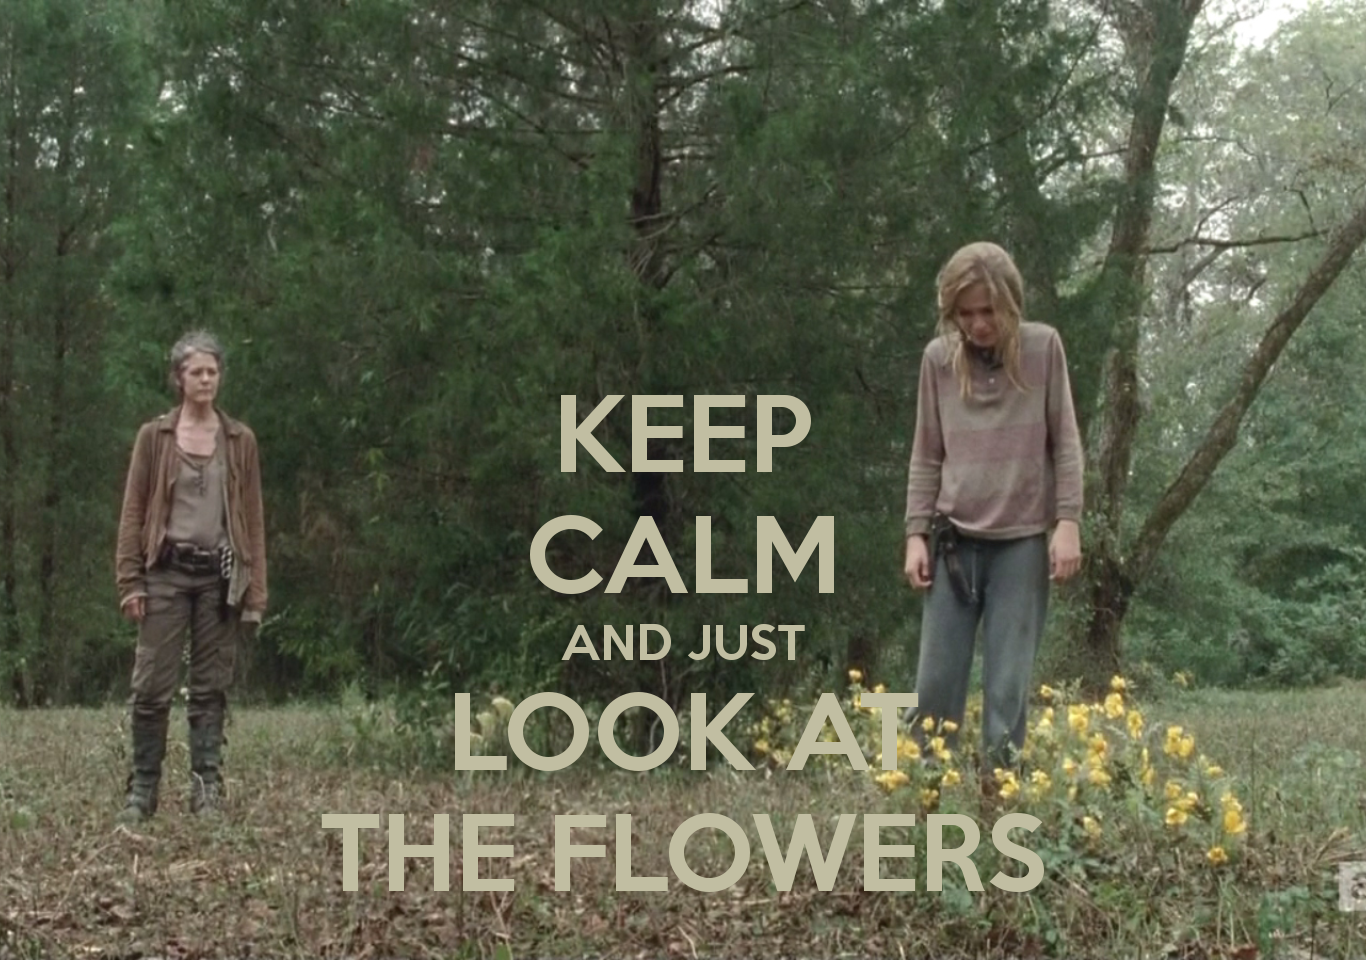 KEEP CALM AND JUST LOOK AT THE FLOWERS - KEEP CALM AND CARRY ON ...